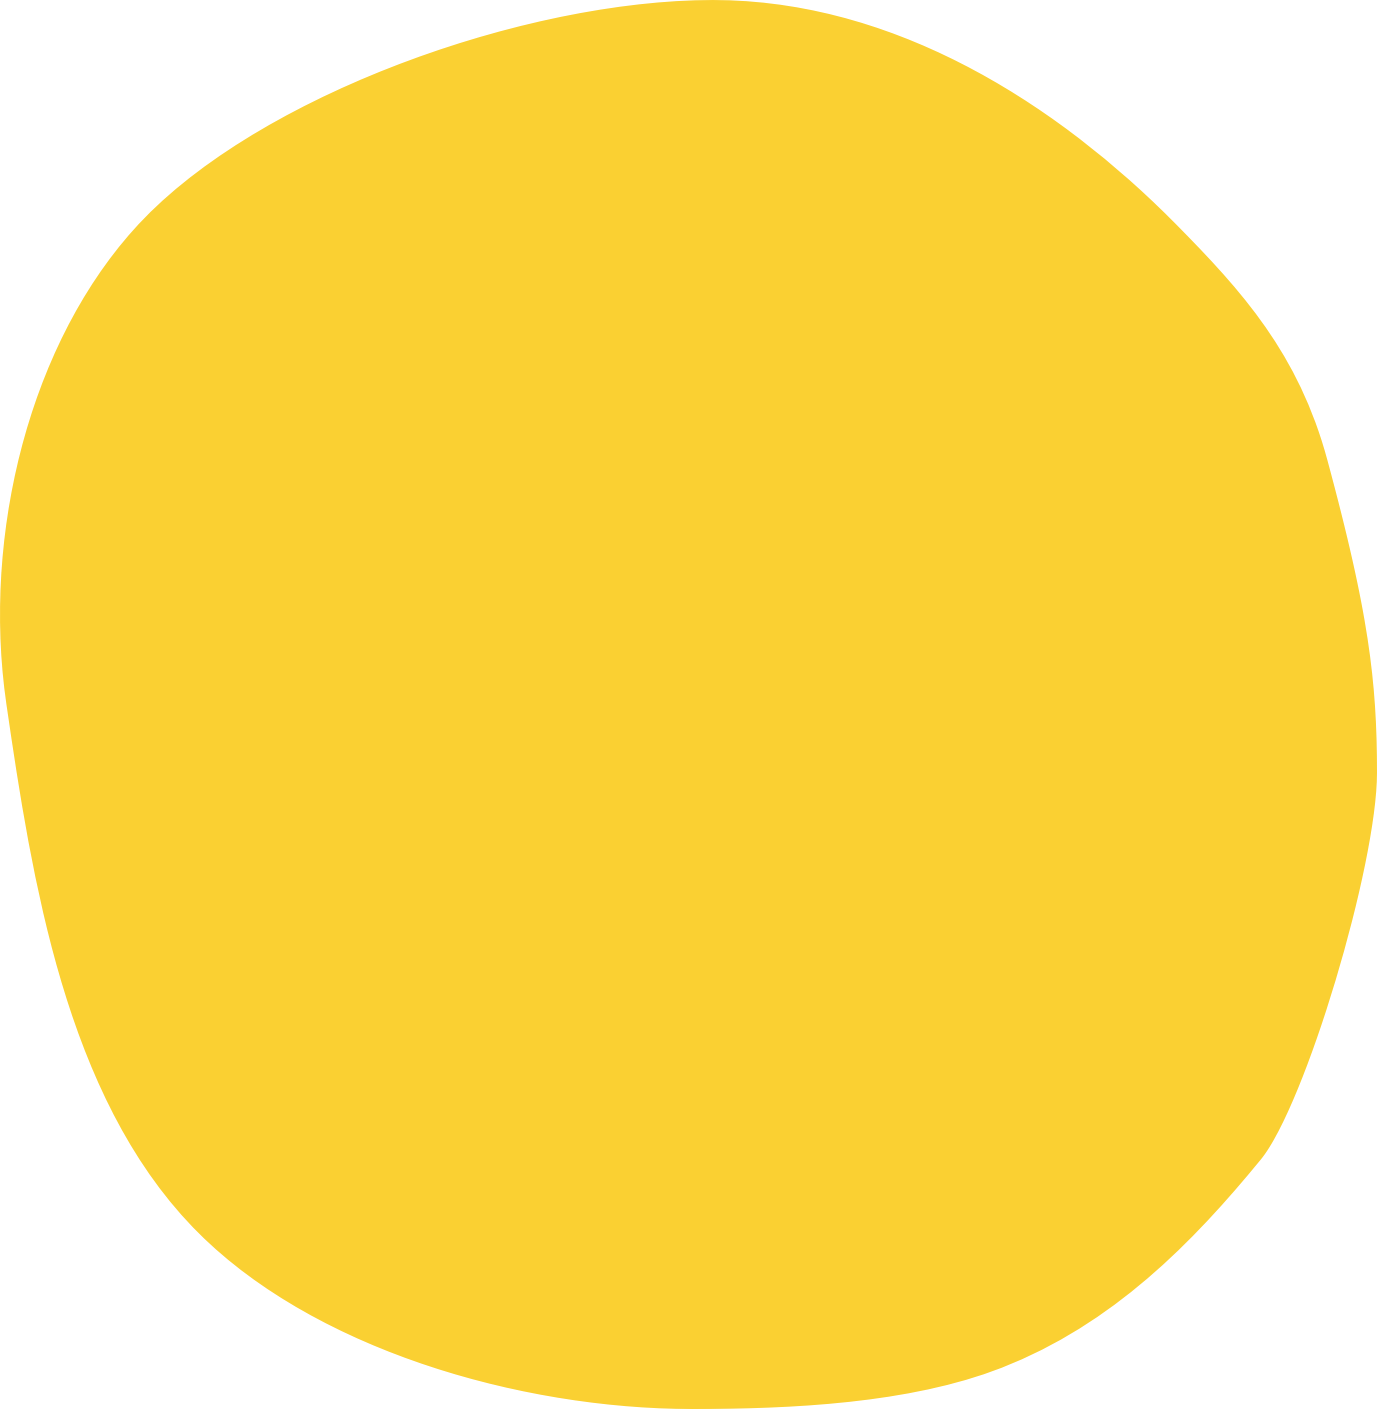 Oval 3 Copy 4.png